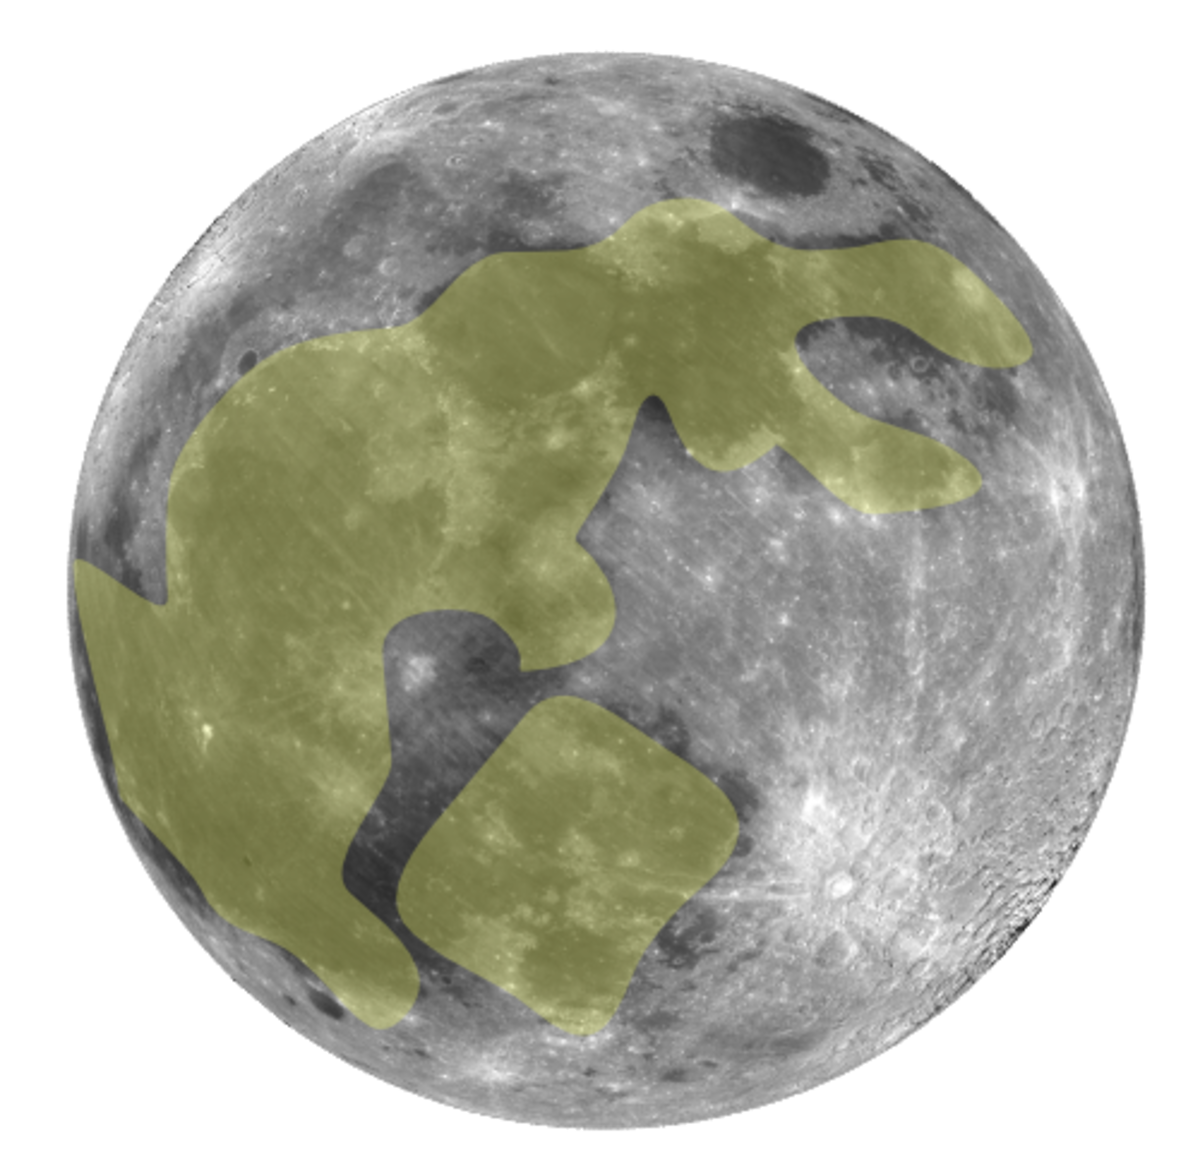 An outline of the rabbit in the moon. Can you see it?